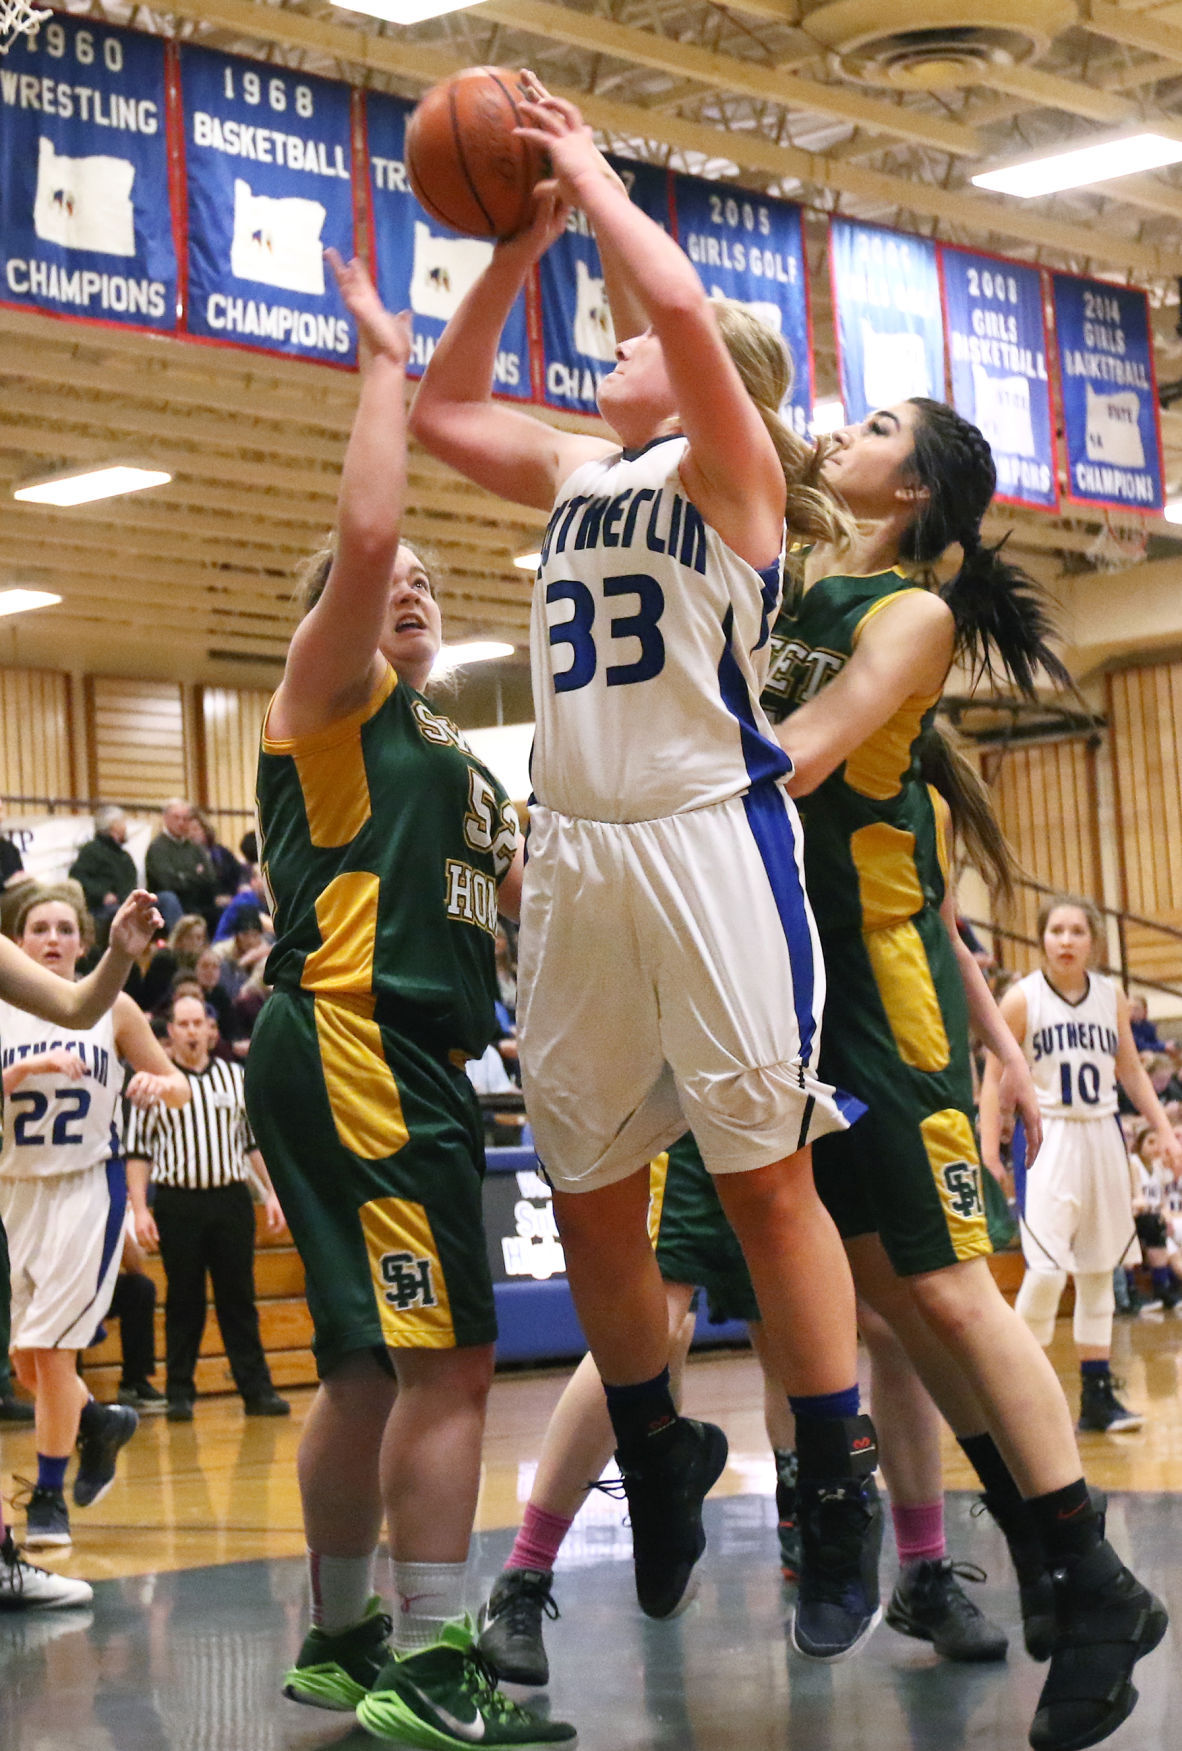 sutherlin girls Sutherlin, ore -- a girls basketball coach in sutherlin is getting national  attention as a finalist for us cellular's national coach program.